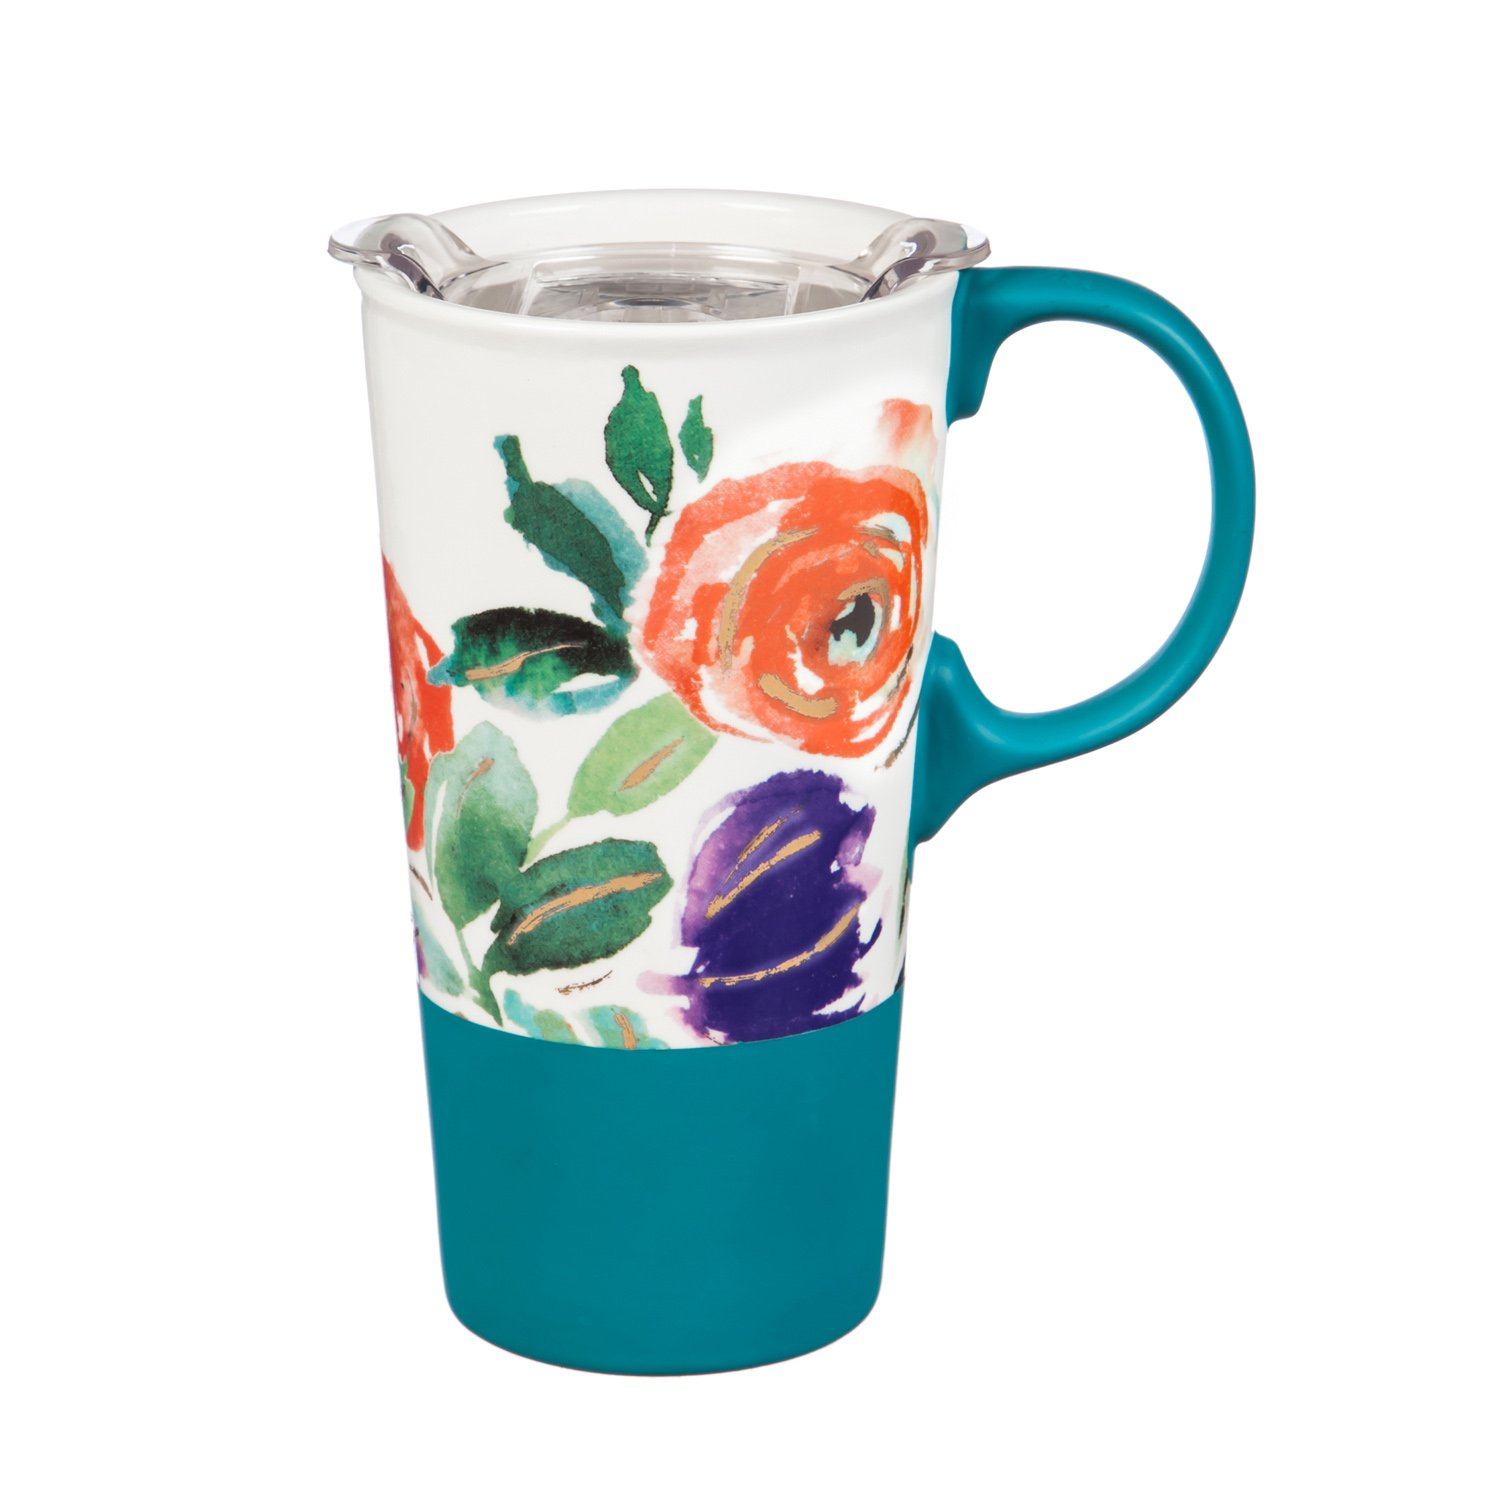 Cypress Home Purple Boho Floral Party Ceramic Travel Coffee Mug with Silicone Handle, Metallic Accents and Gift Box, 17 ounces